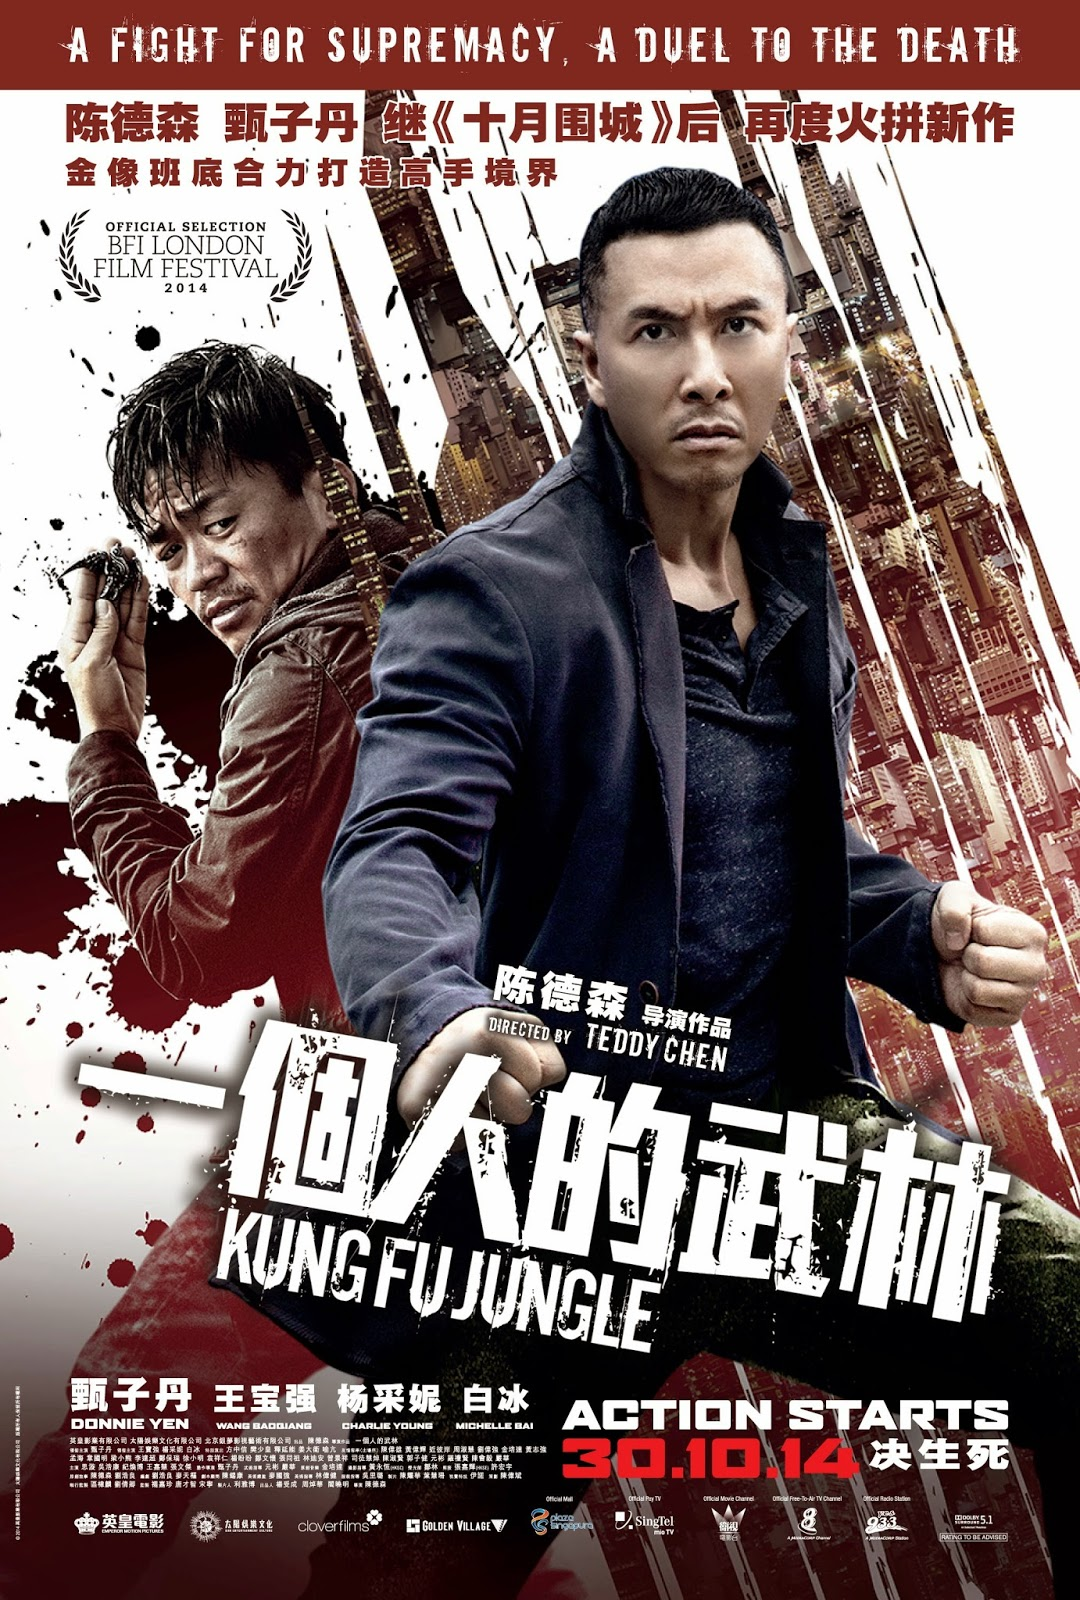 Kungfu Jungle (一个人的武林) Movie Poster